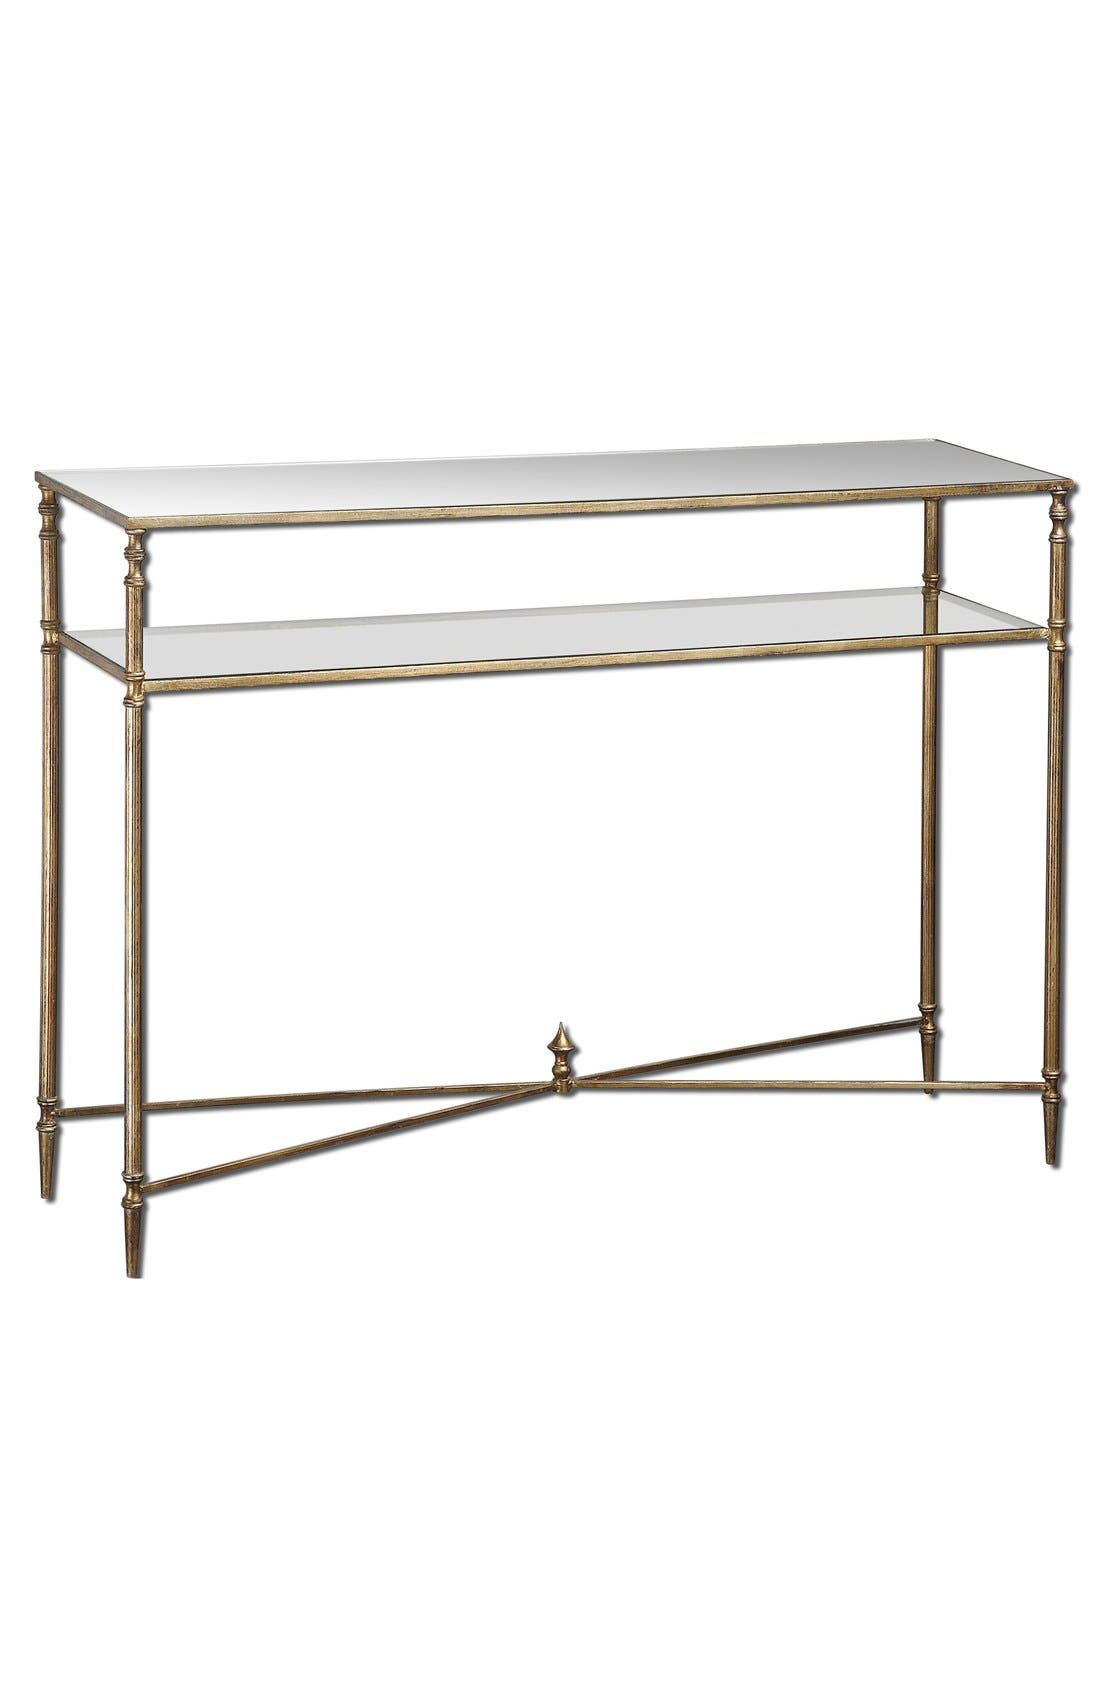 Uttermost 'Henzler' Mirrored Console Table